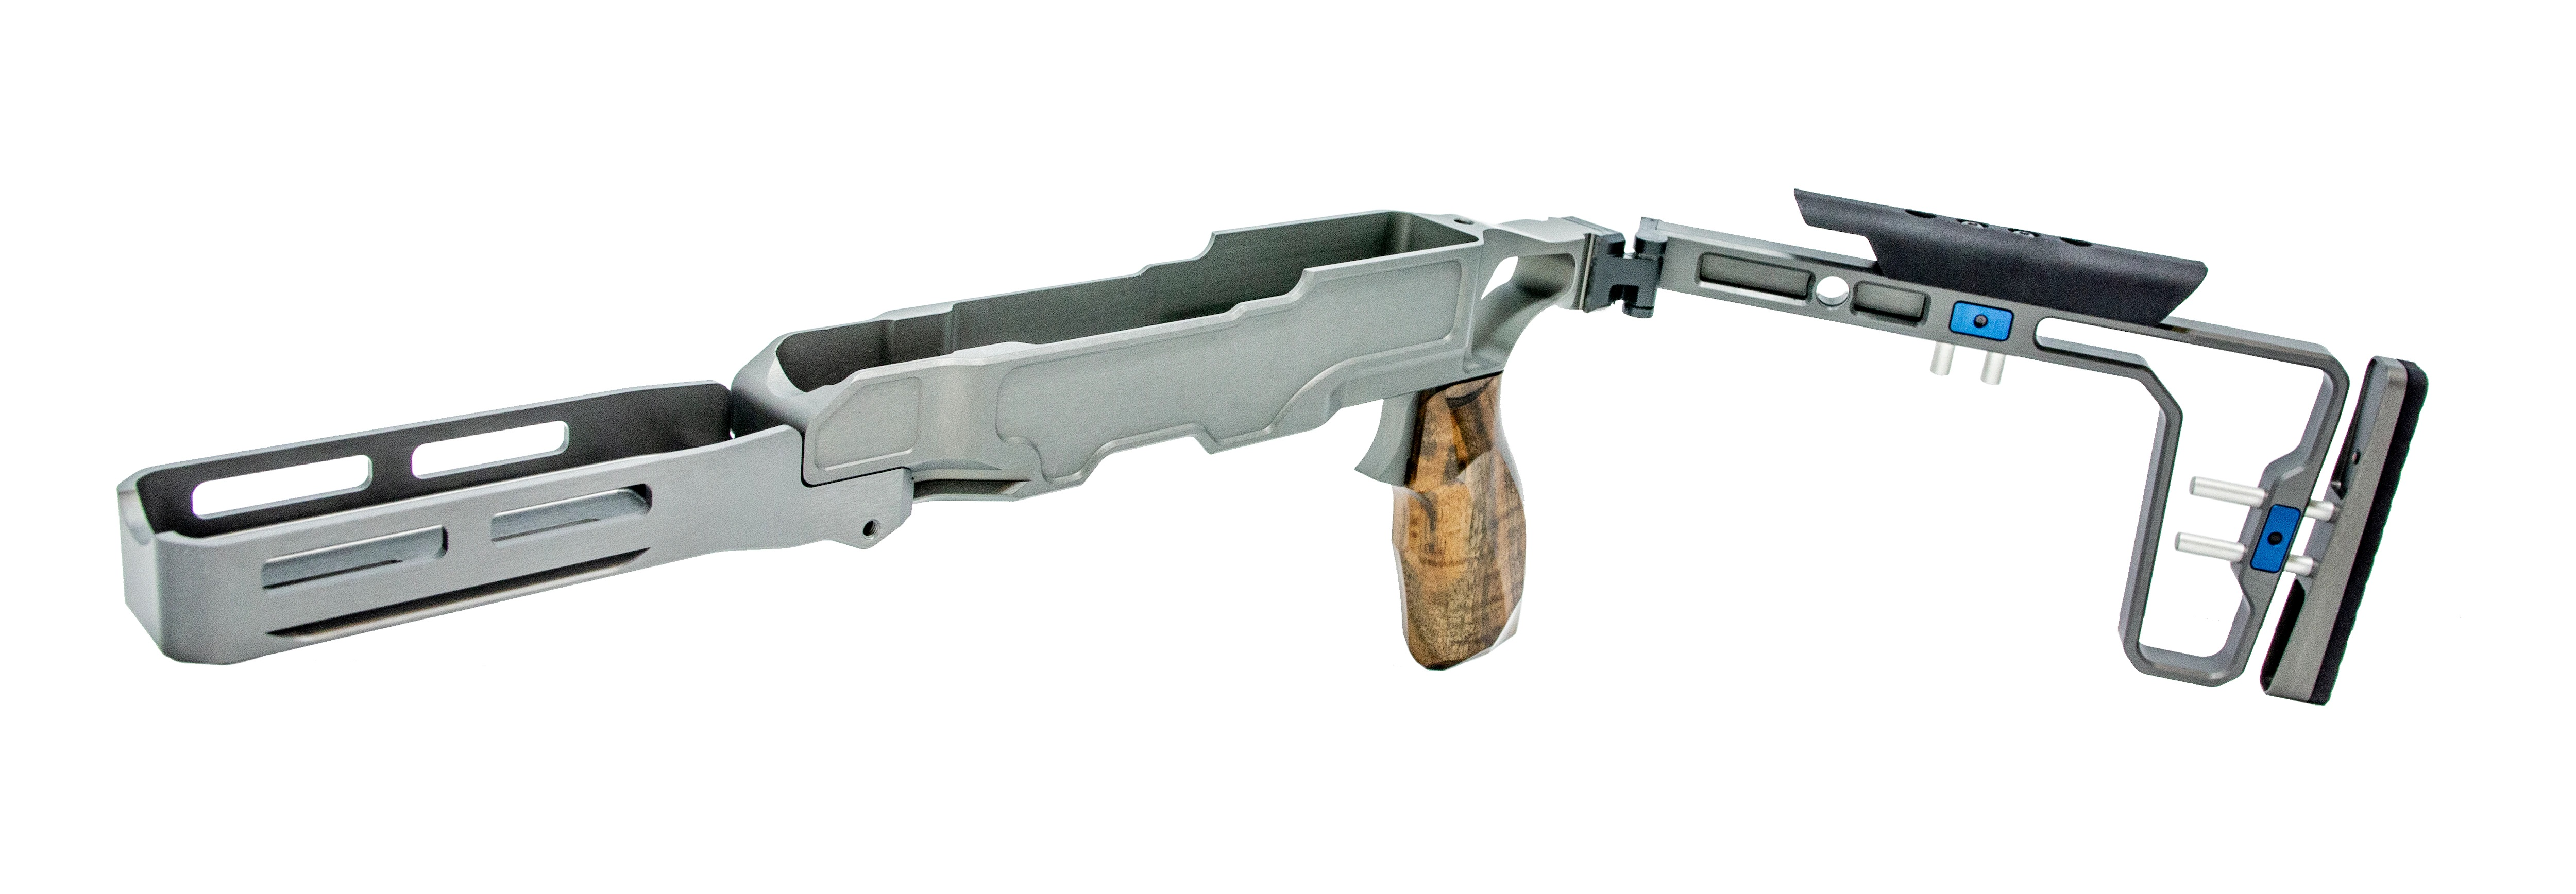 The Foundation 10/22 Modular Chassis System from Grey Birch Solutions